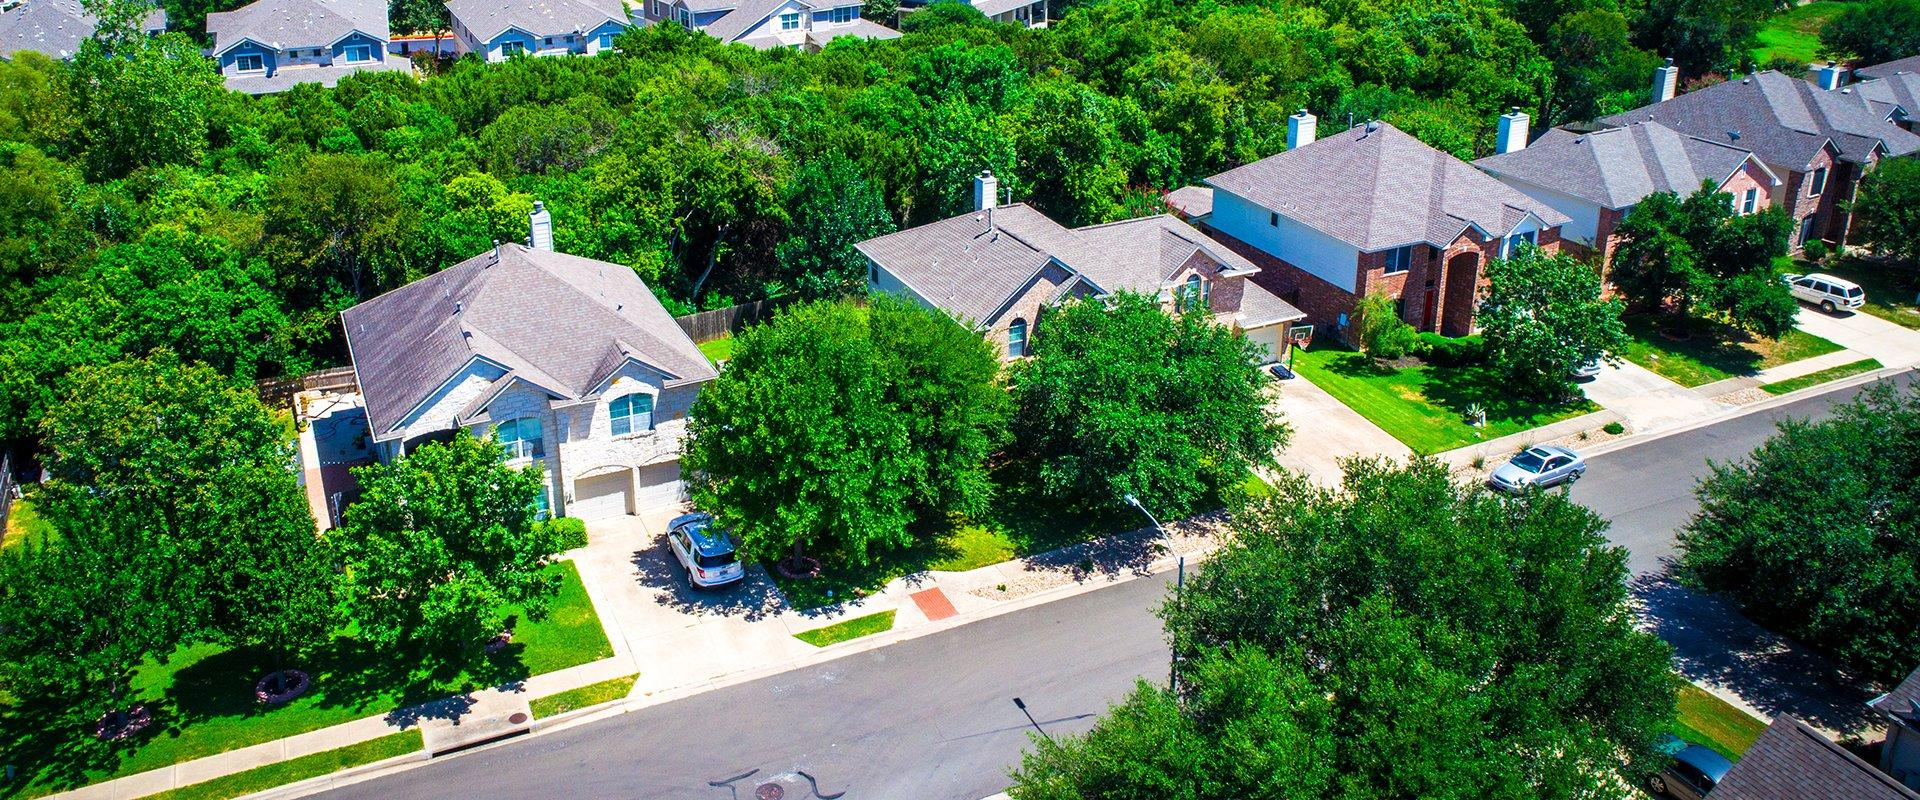 suburb homes in texas